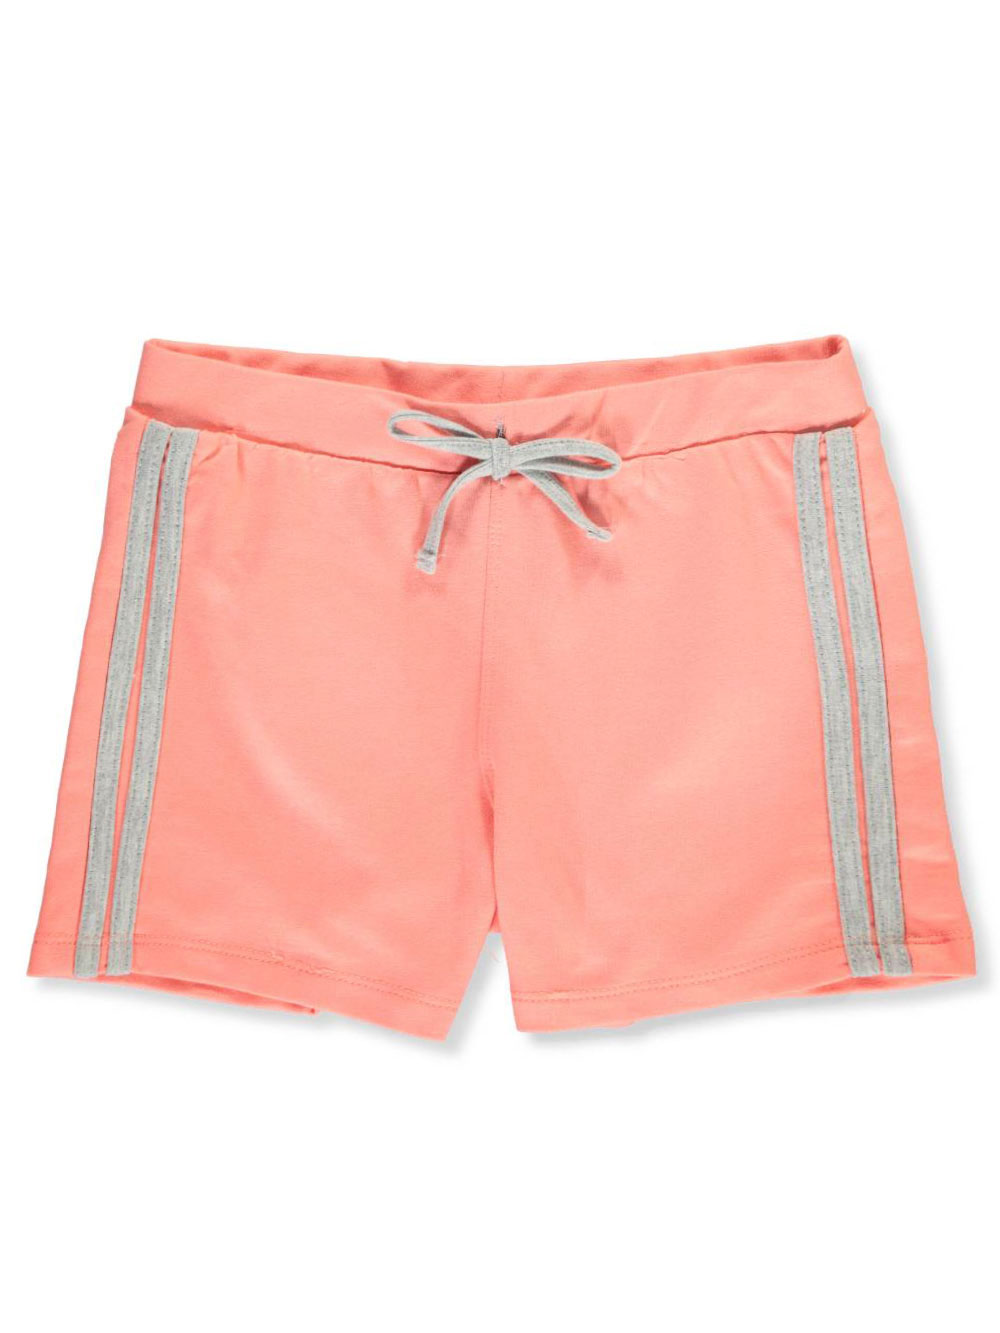 1d7b0a2dd19 Girls' French Terry Shorts by Real Love in coral and mint from ...